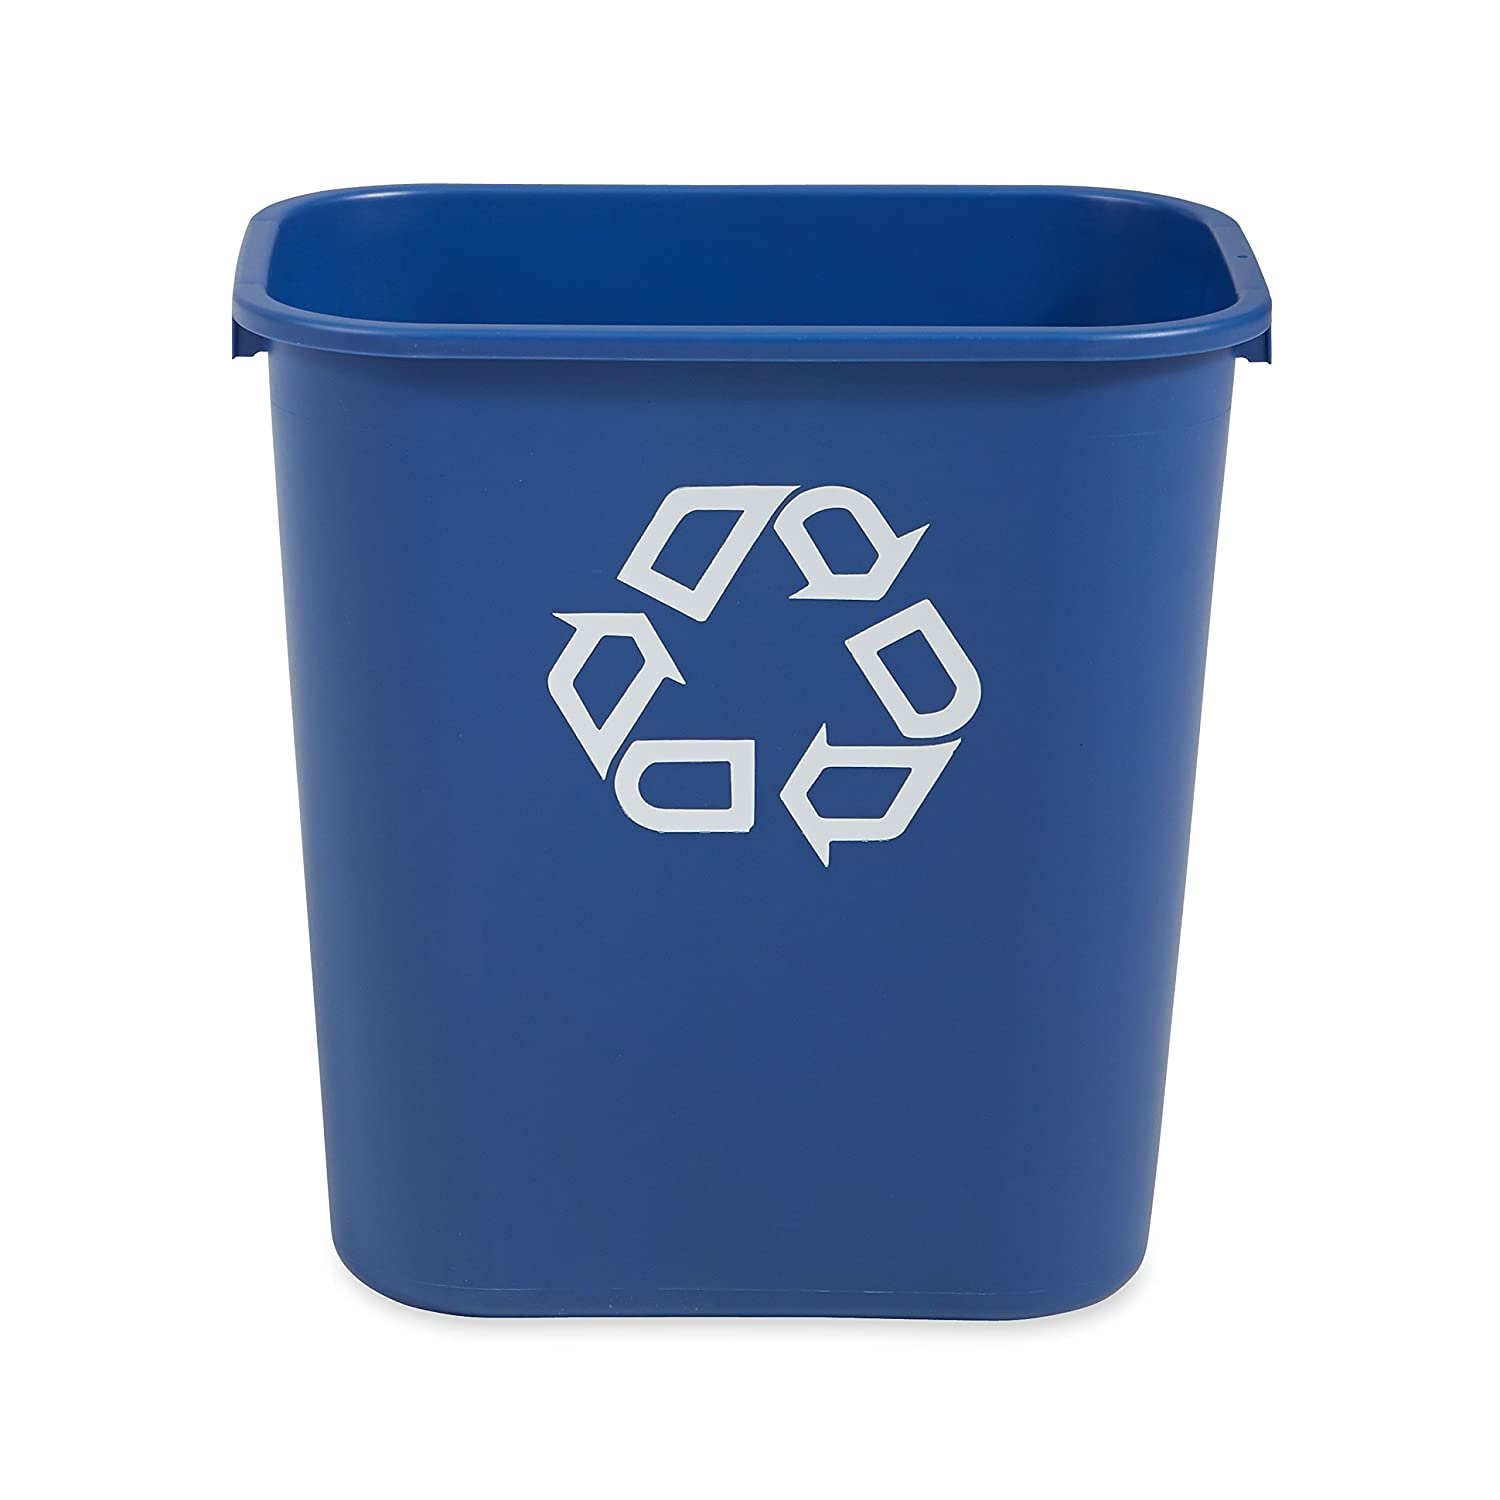 Rubbermaid Wastebasket Polyethylene Rectangular 26.6 Litres W365xD260xH380mm Blue Ref 2956-73-BLU RUB139